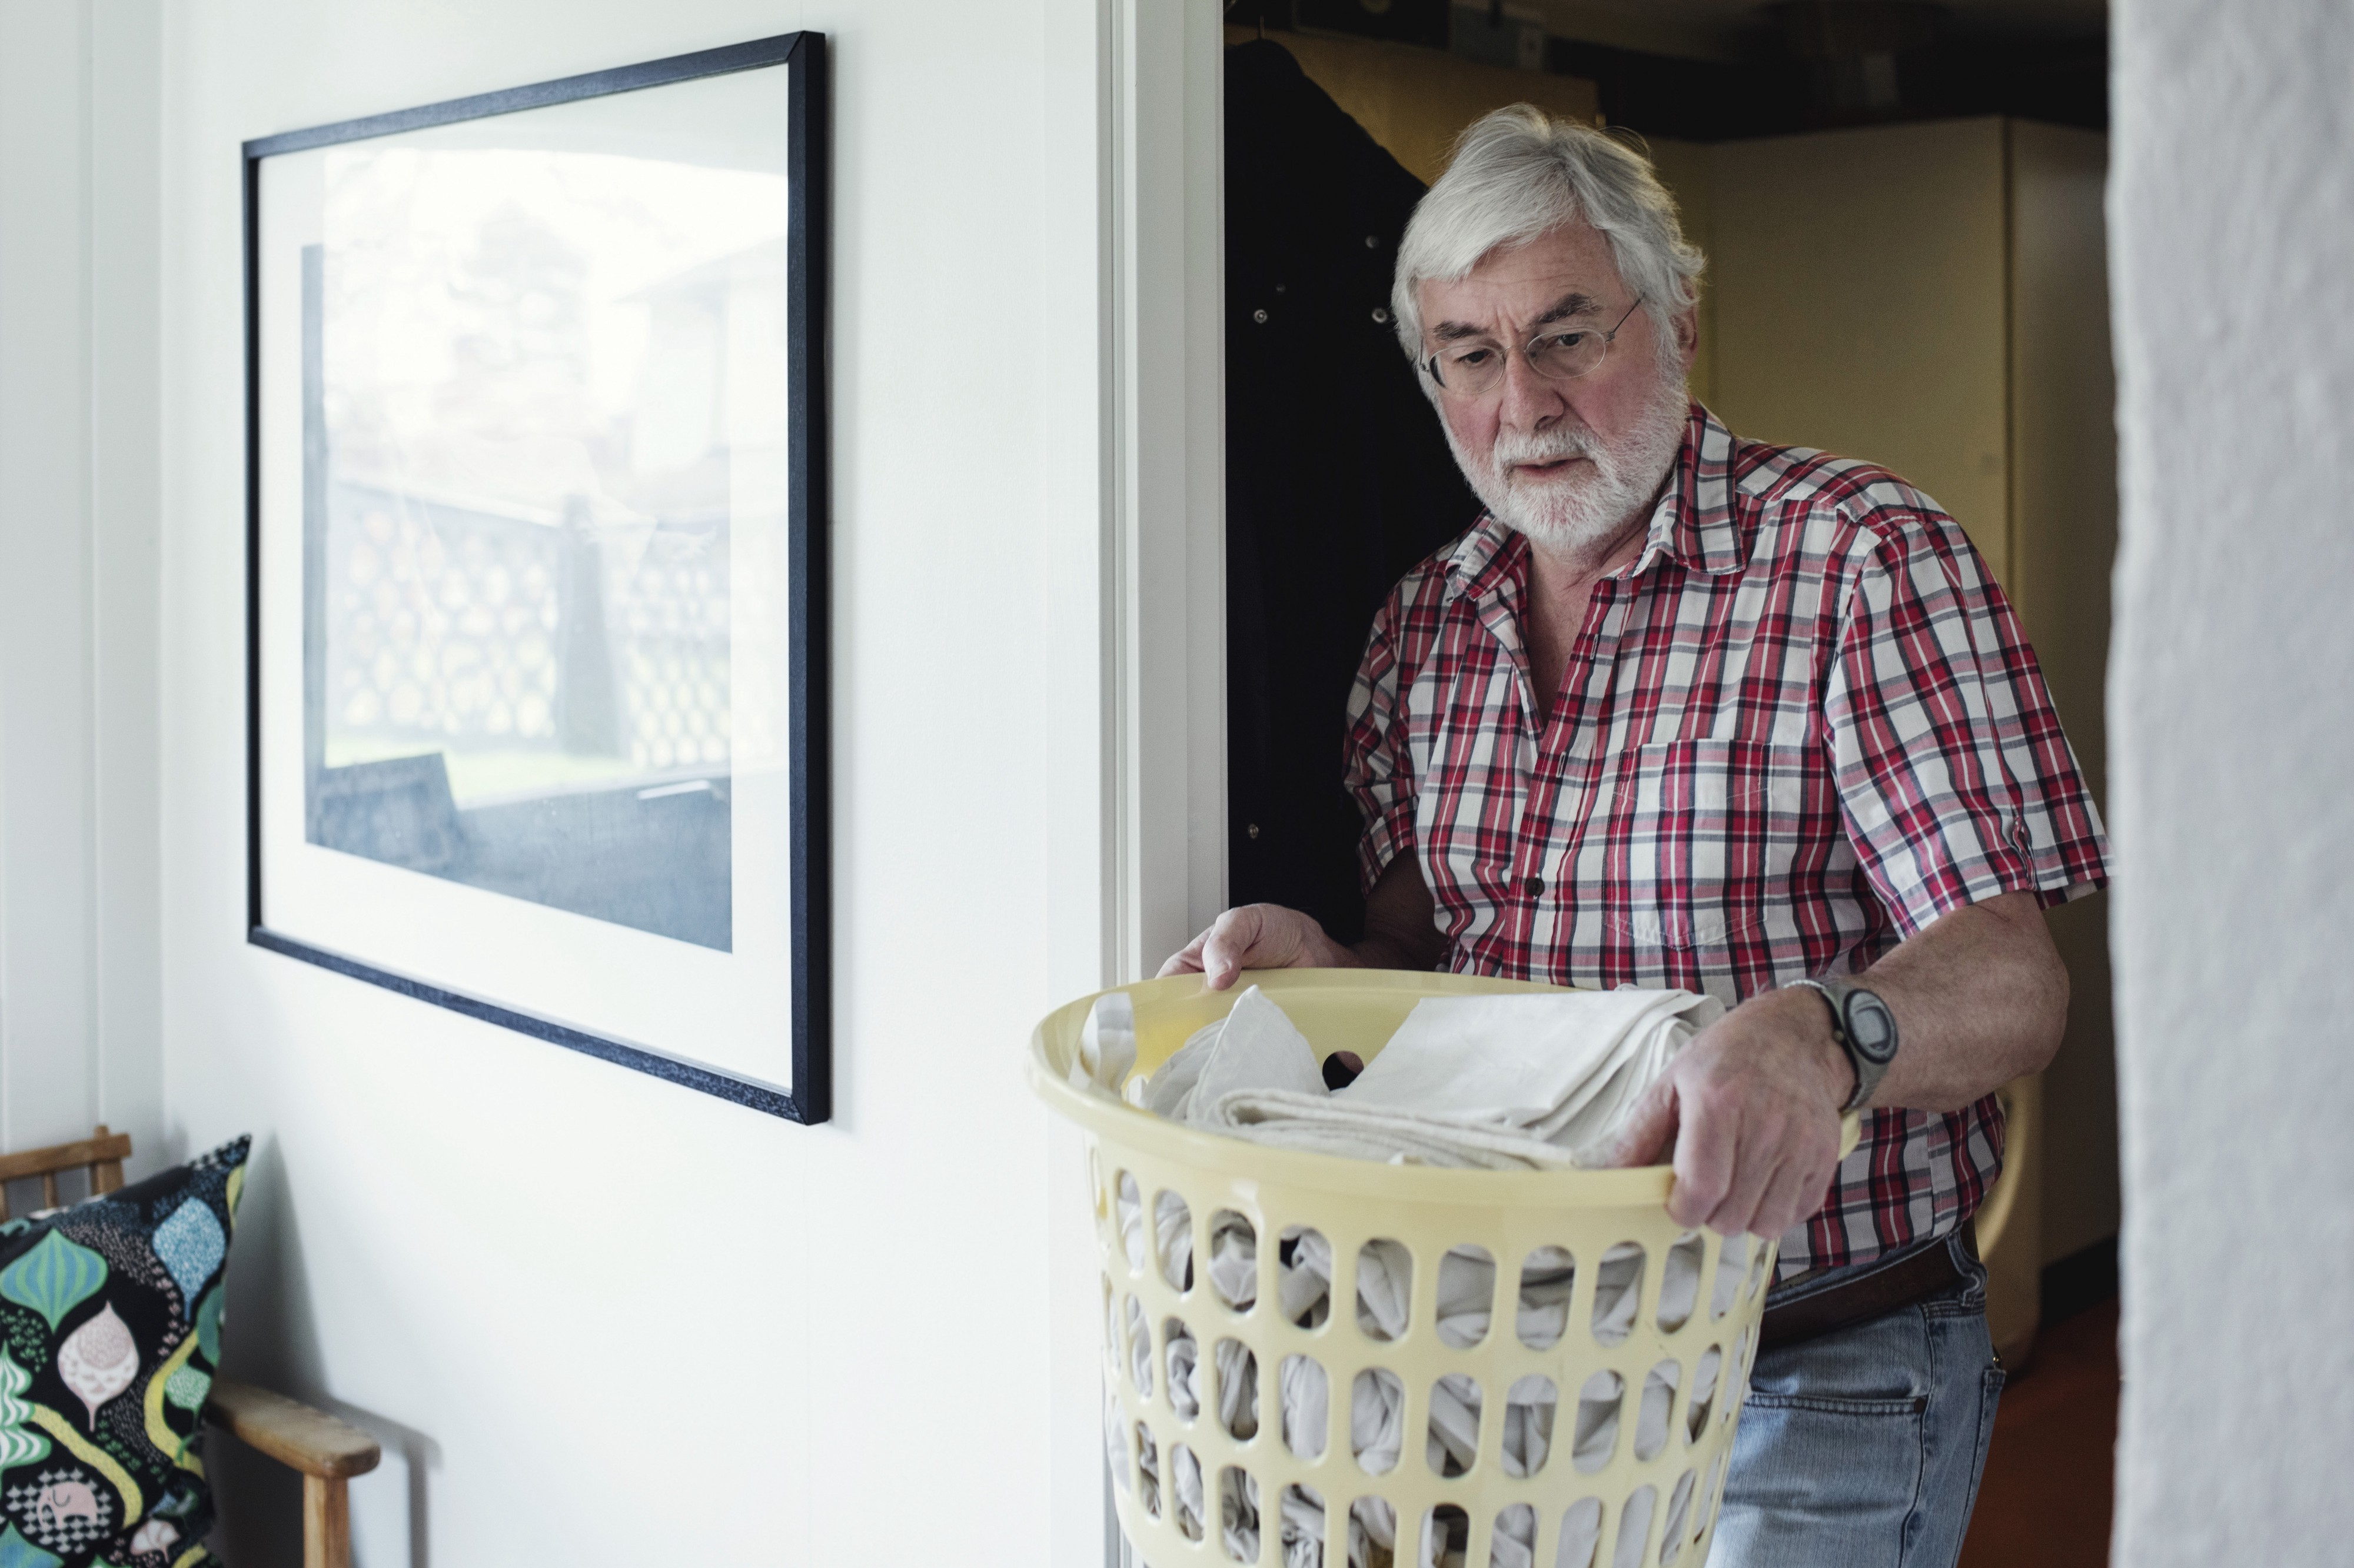 A man holding laundry basket while walking through doorway at home